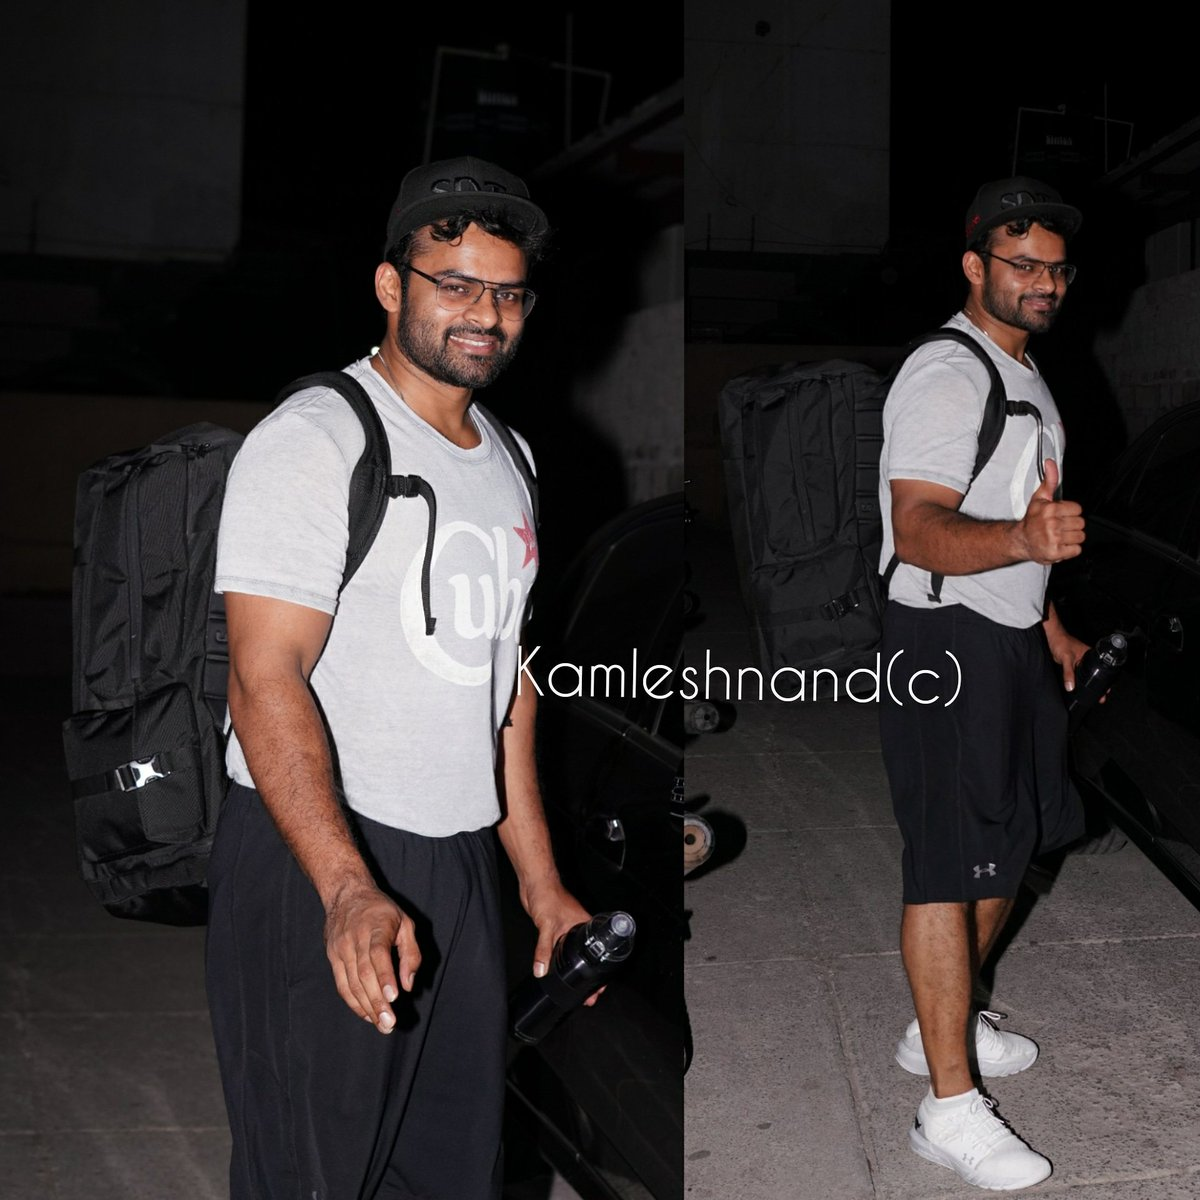 Super cool #saidharamtej spotted post gym session in the city   @IamSaiDharamTej @kamlesh_nand #fitnessfreaks  #tollywoodcelebs  #Actor #saidharamtejfans #hyderabad #southpaparazzi #megafanspic.twitter.com/g96QTWwoXk